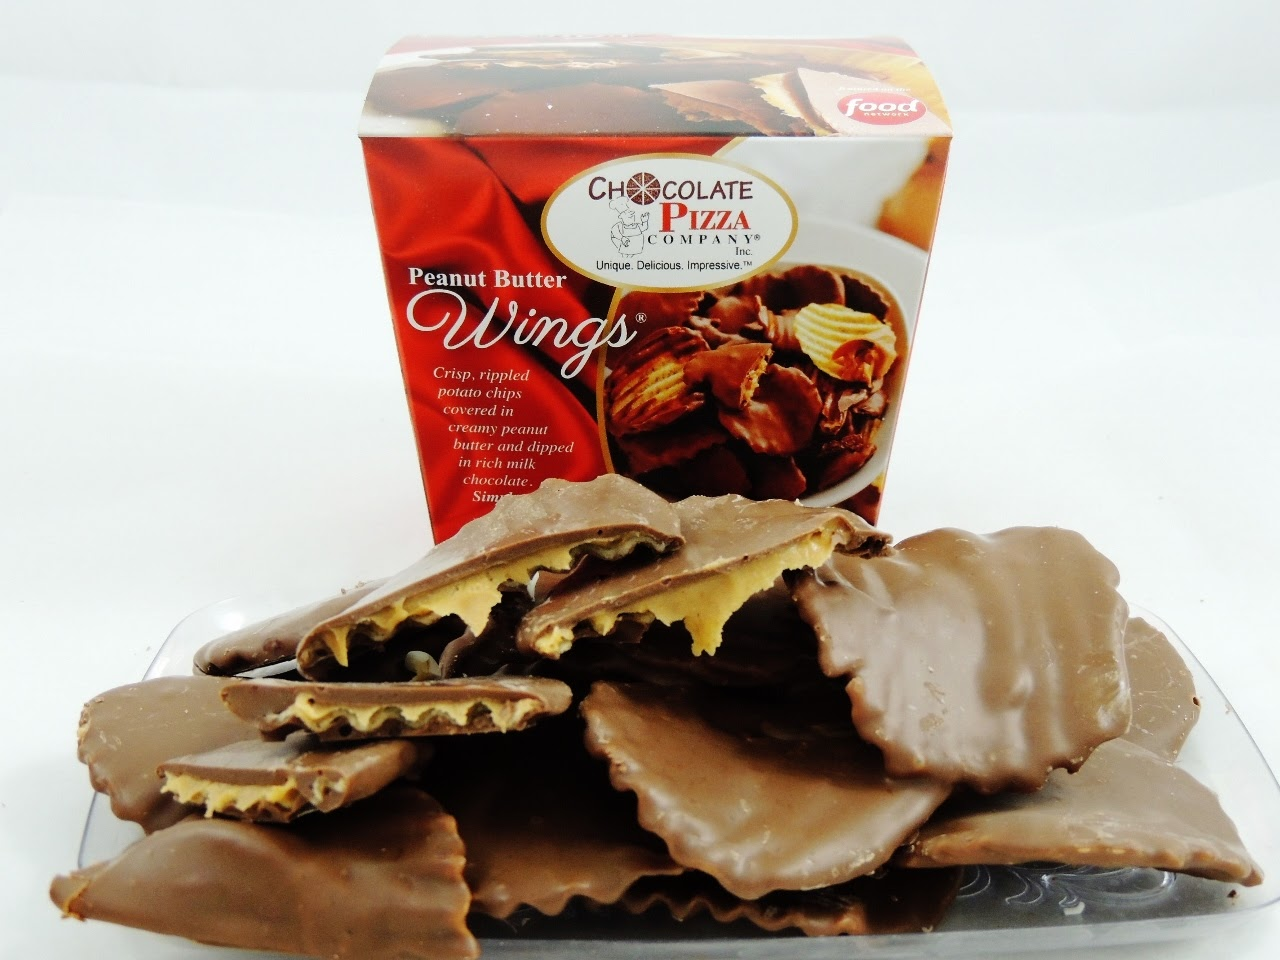 Peanut Butter Wings/Chocolate Pizza Company